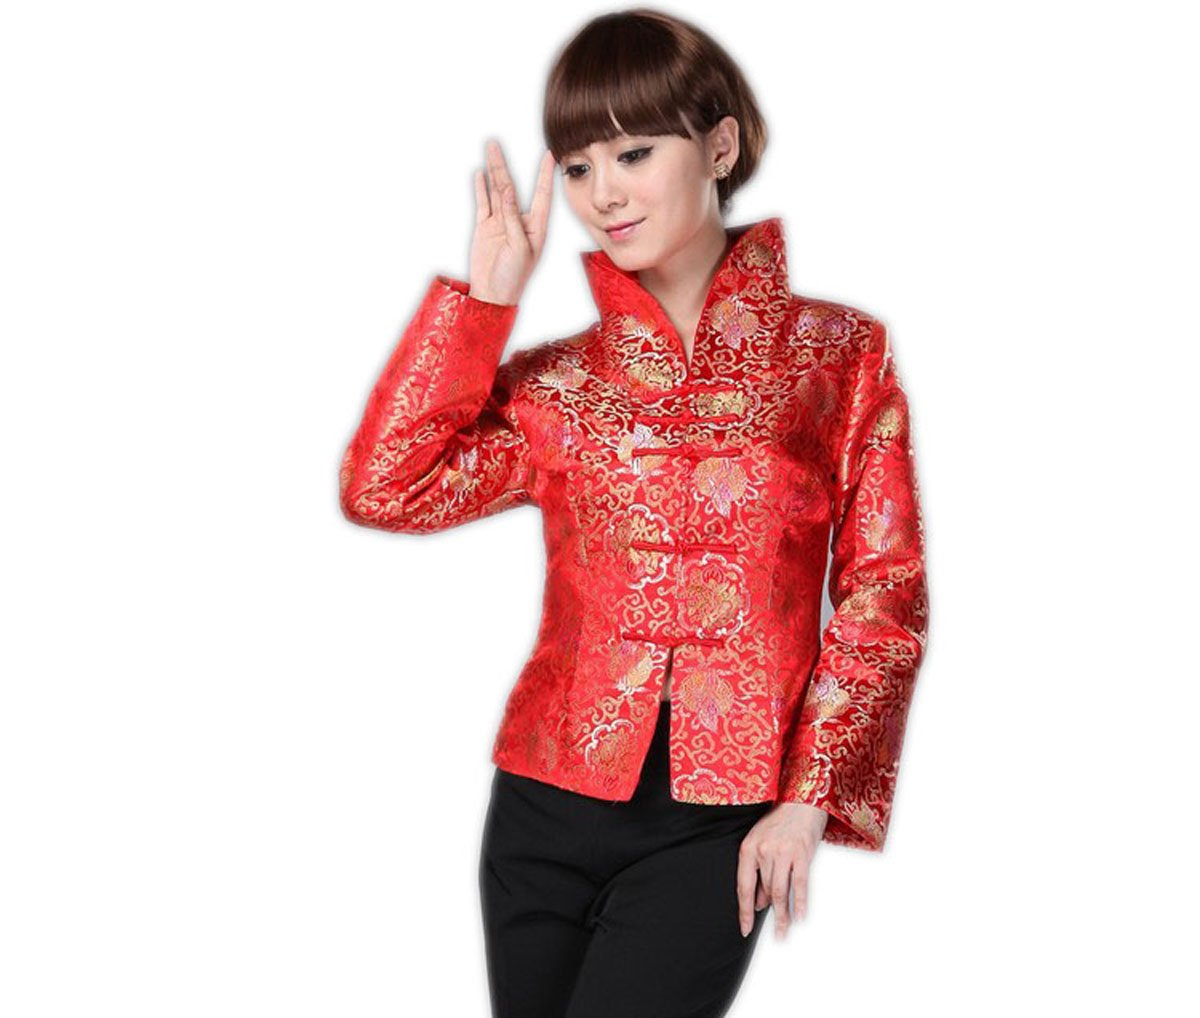 JTC Royal Chinese Top Womens Costume Jacket Coat Long Sleeve Clothing Red (XL)